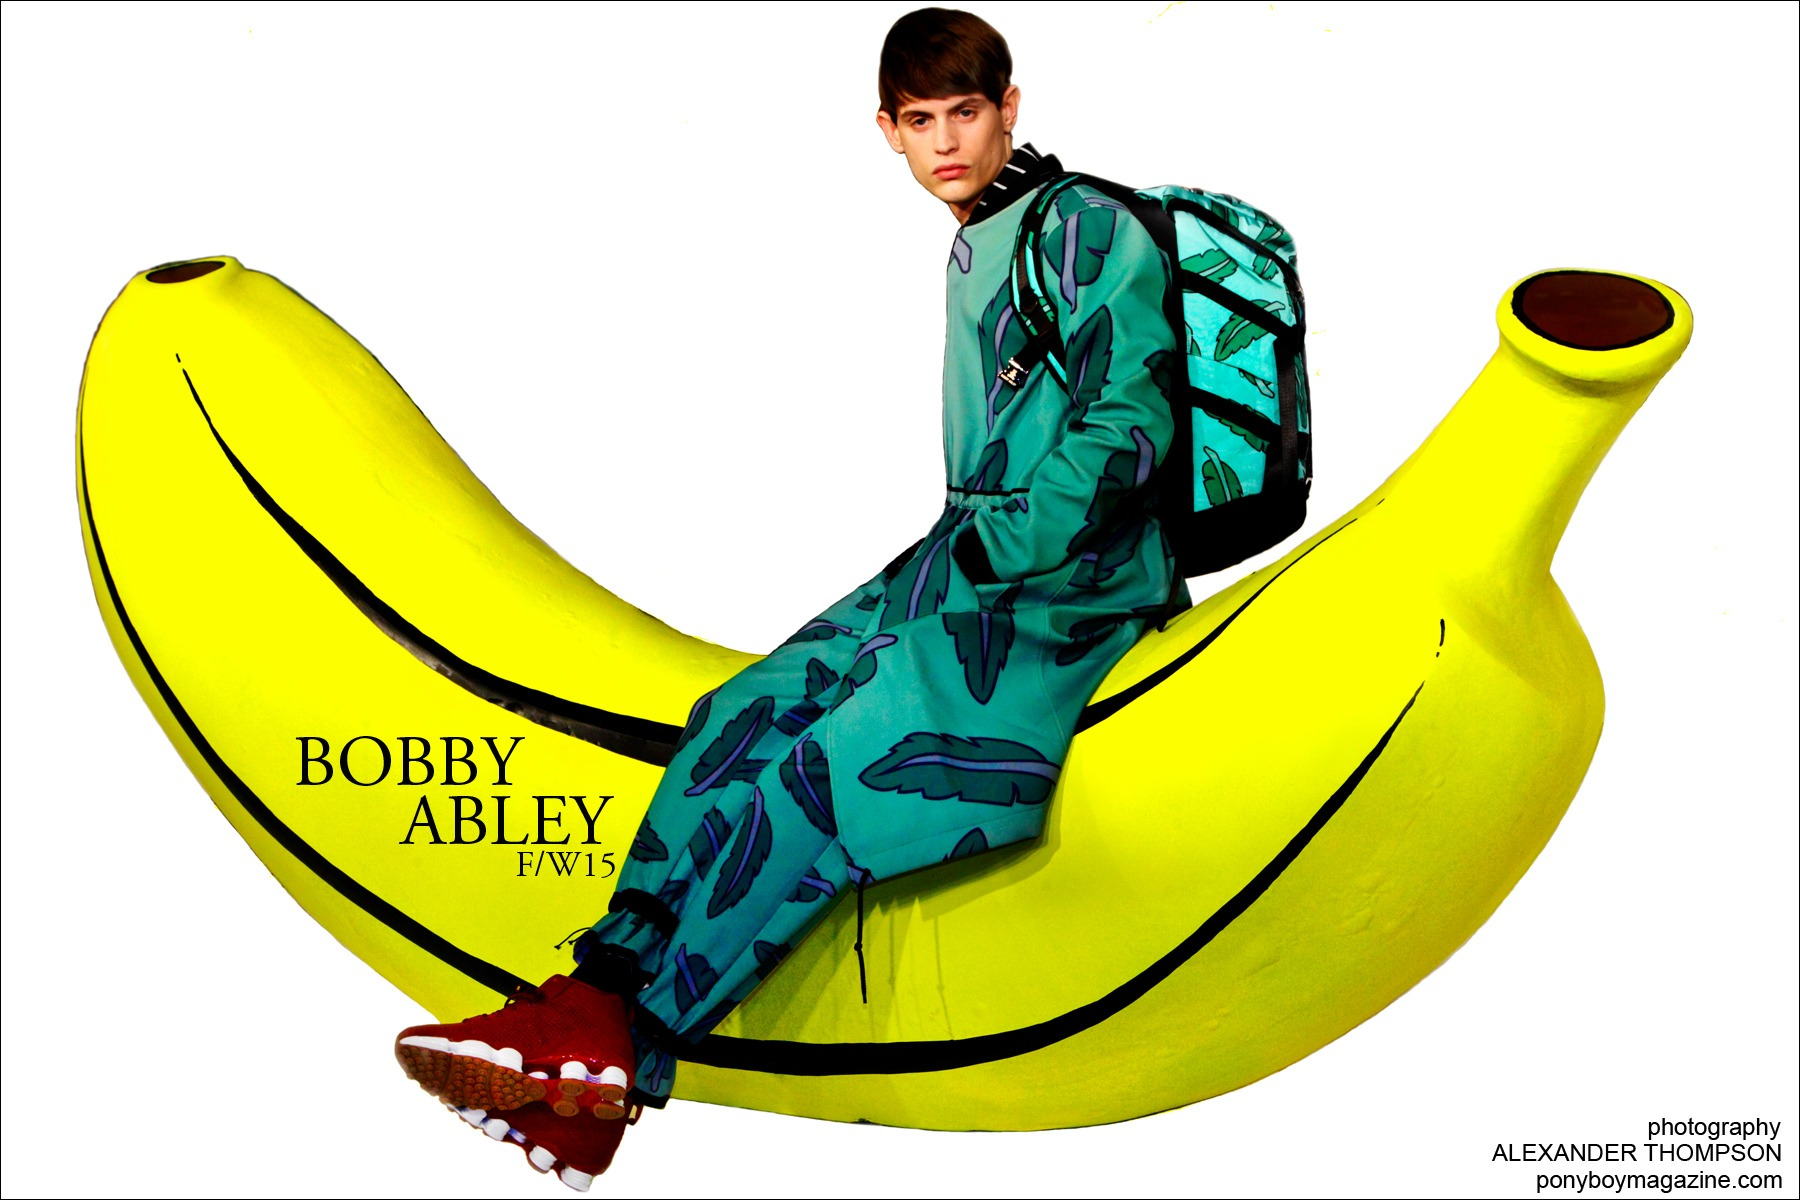 Male model Jakub Pastor photographed by Alexander Thompson at Bobby Abley F/W15 presentation, for Ponyboy magazine.